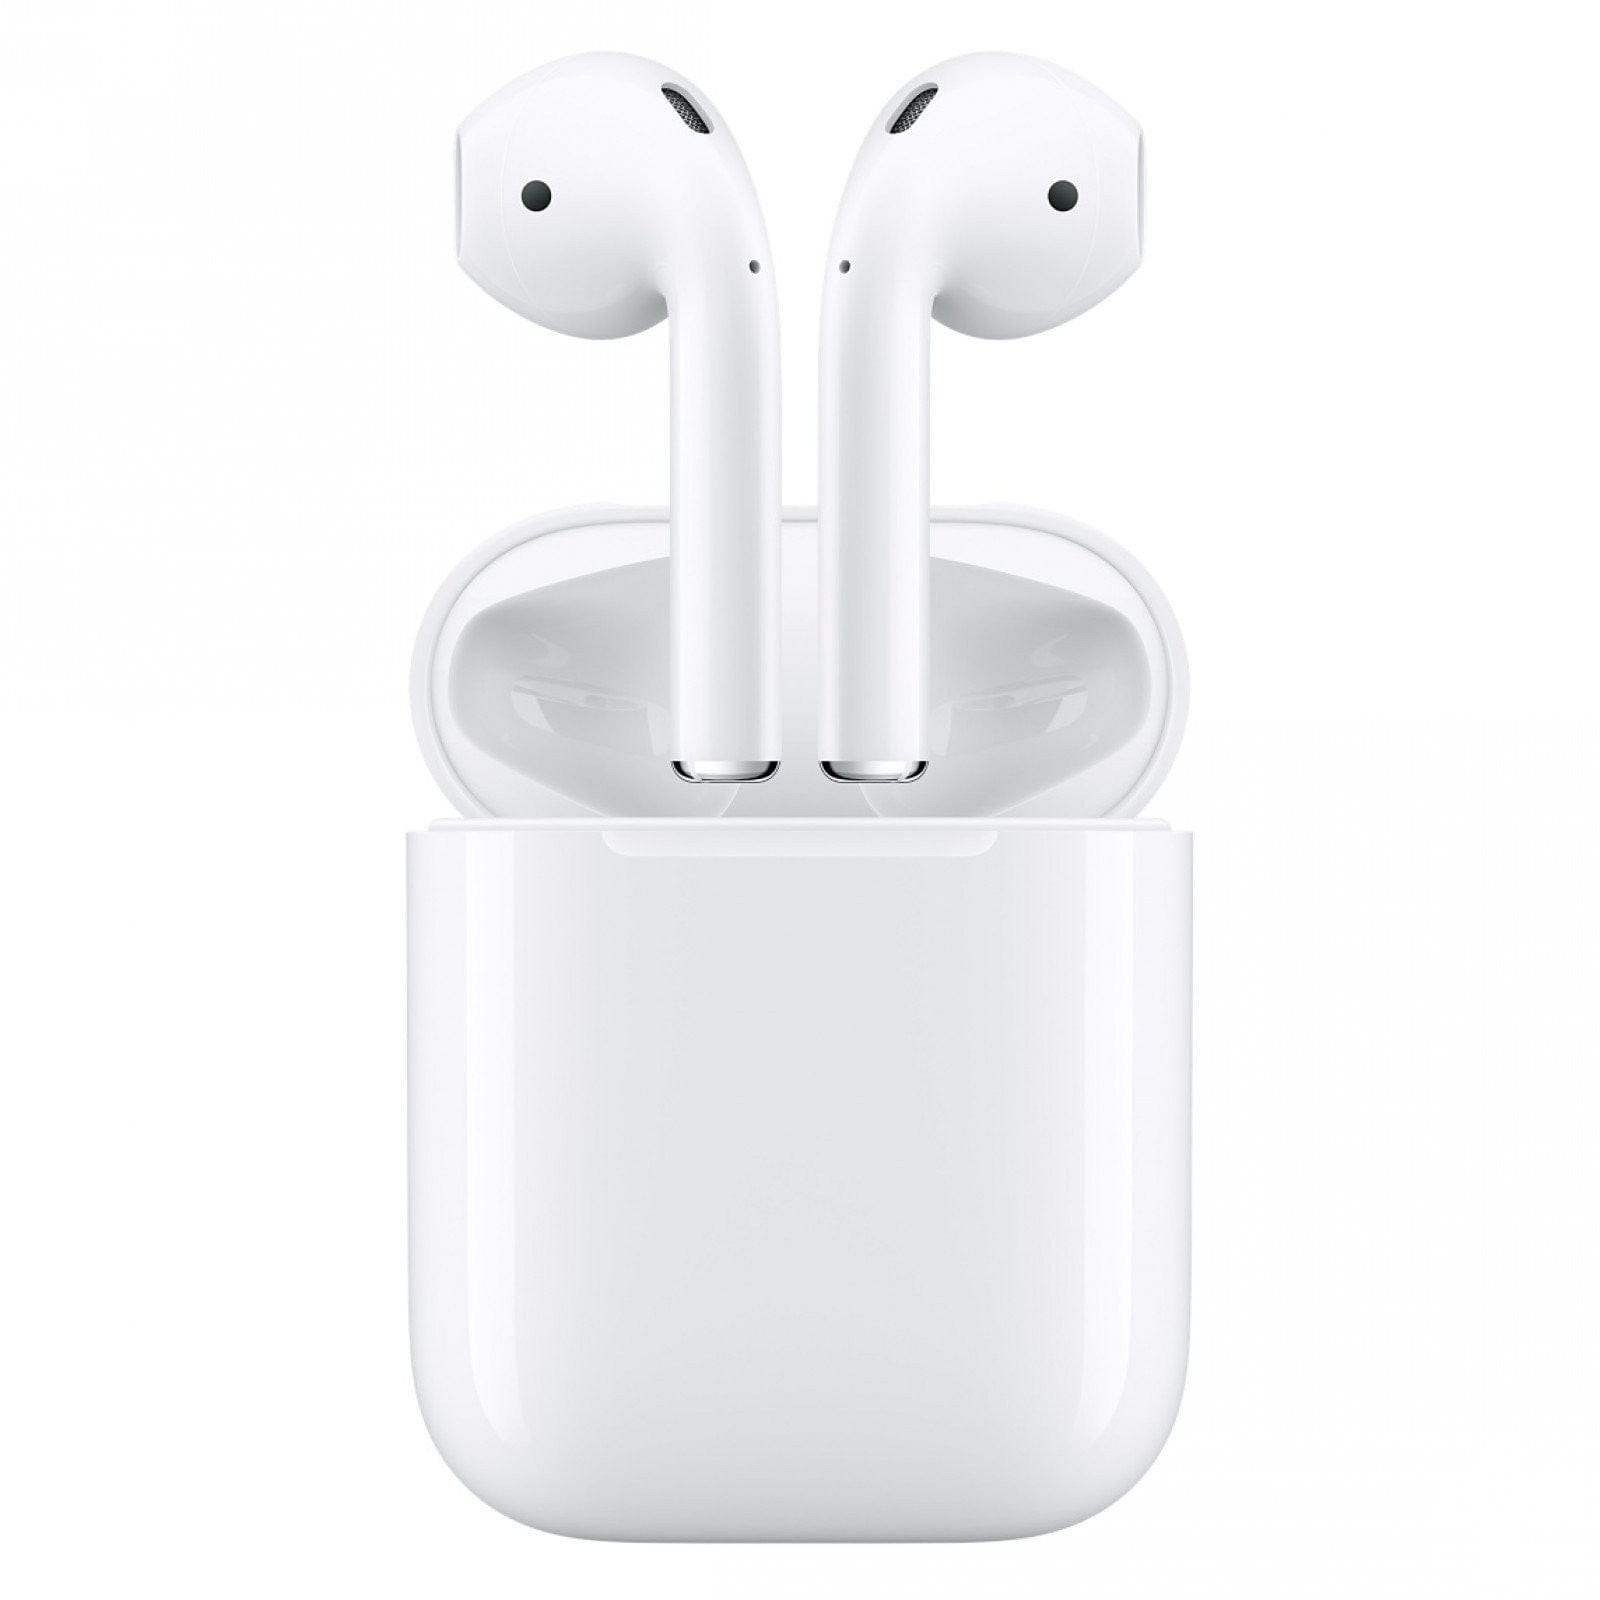 iStore earphones Apple AirPods